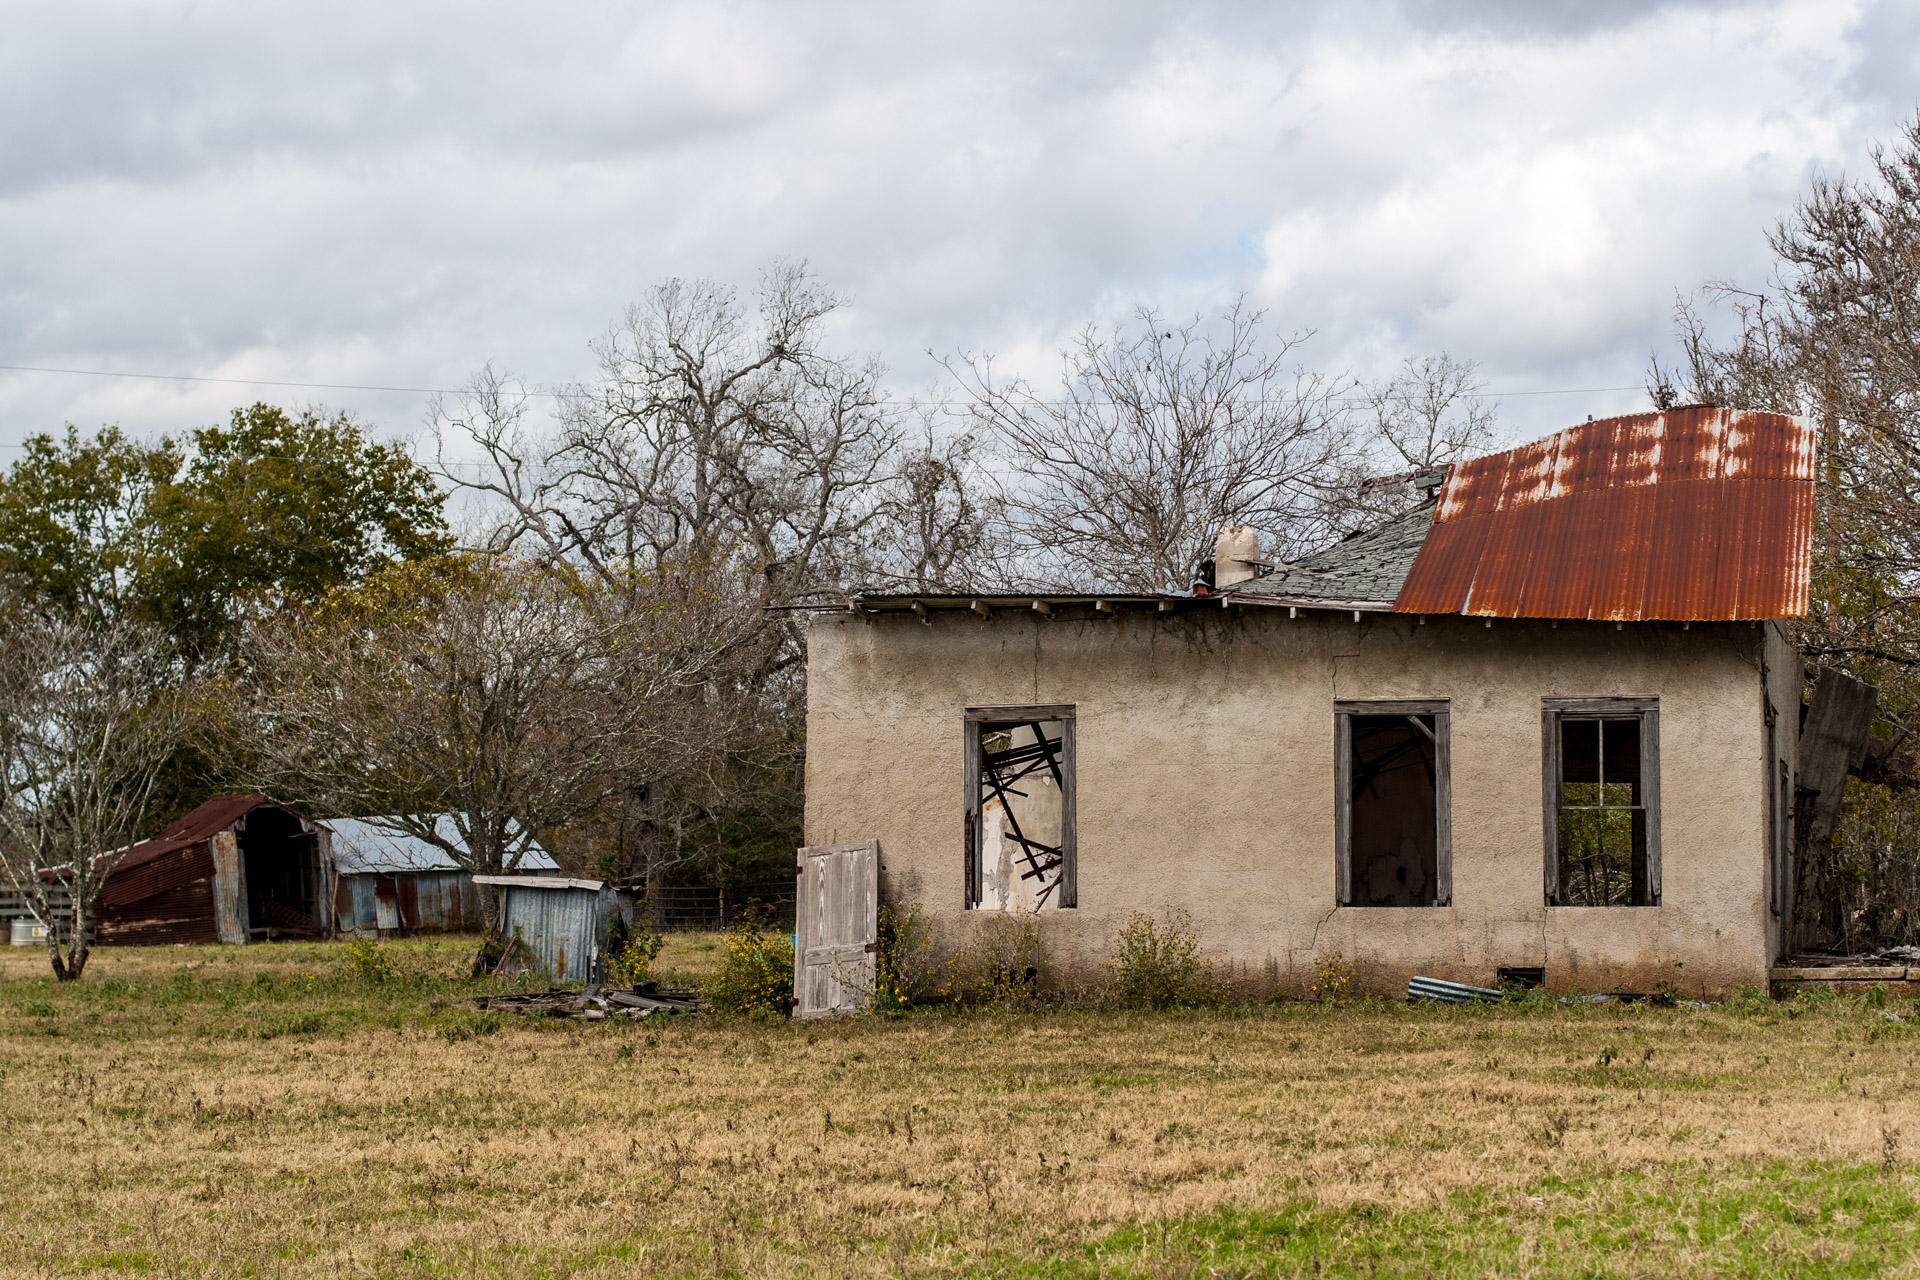 La Grange, Texas - An Impacted Roof Farmhouse (offset)